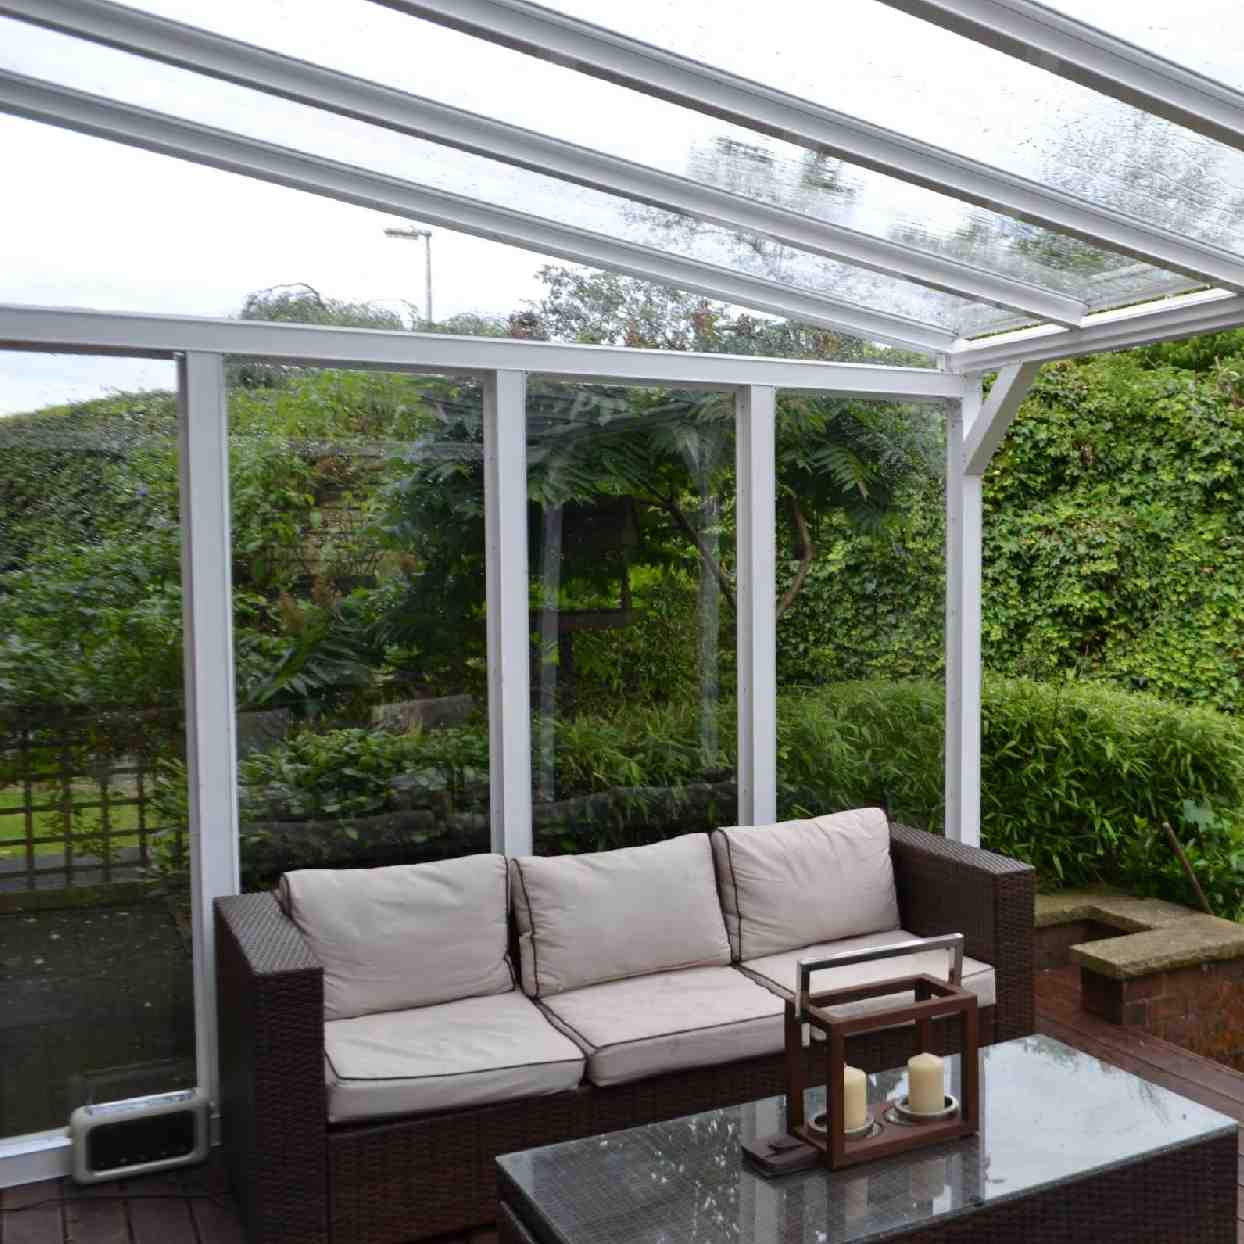 Buy Omega Verandah with 16mm Polycarbonate Glazing - 6.0m (W) x 1.5m (P), (3) Supporting Posts online today